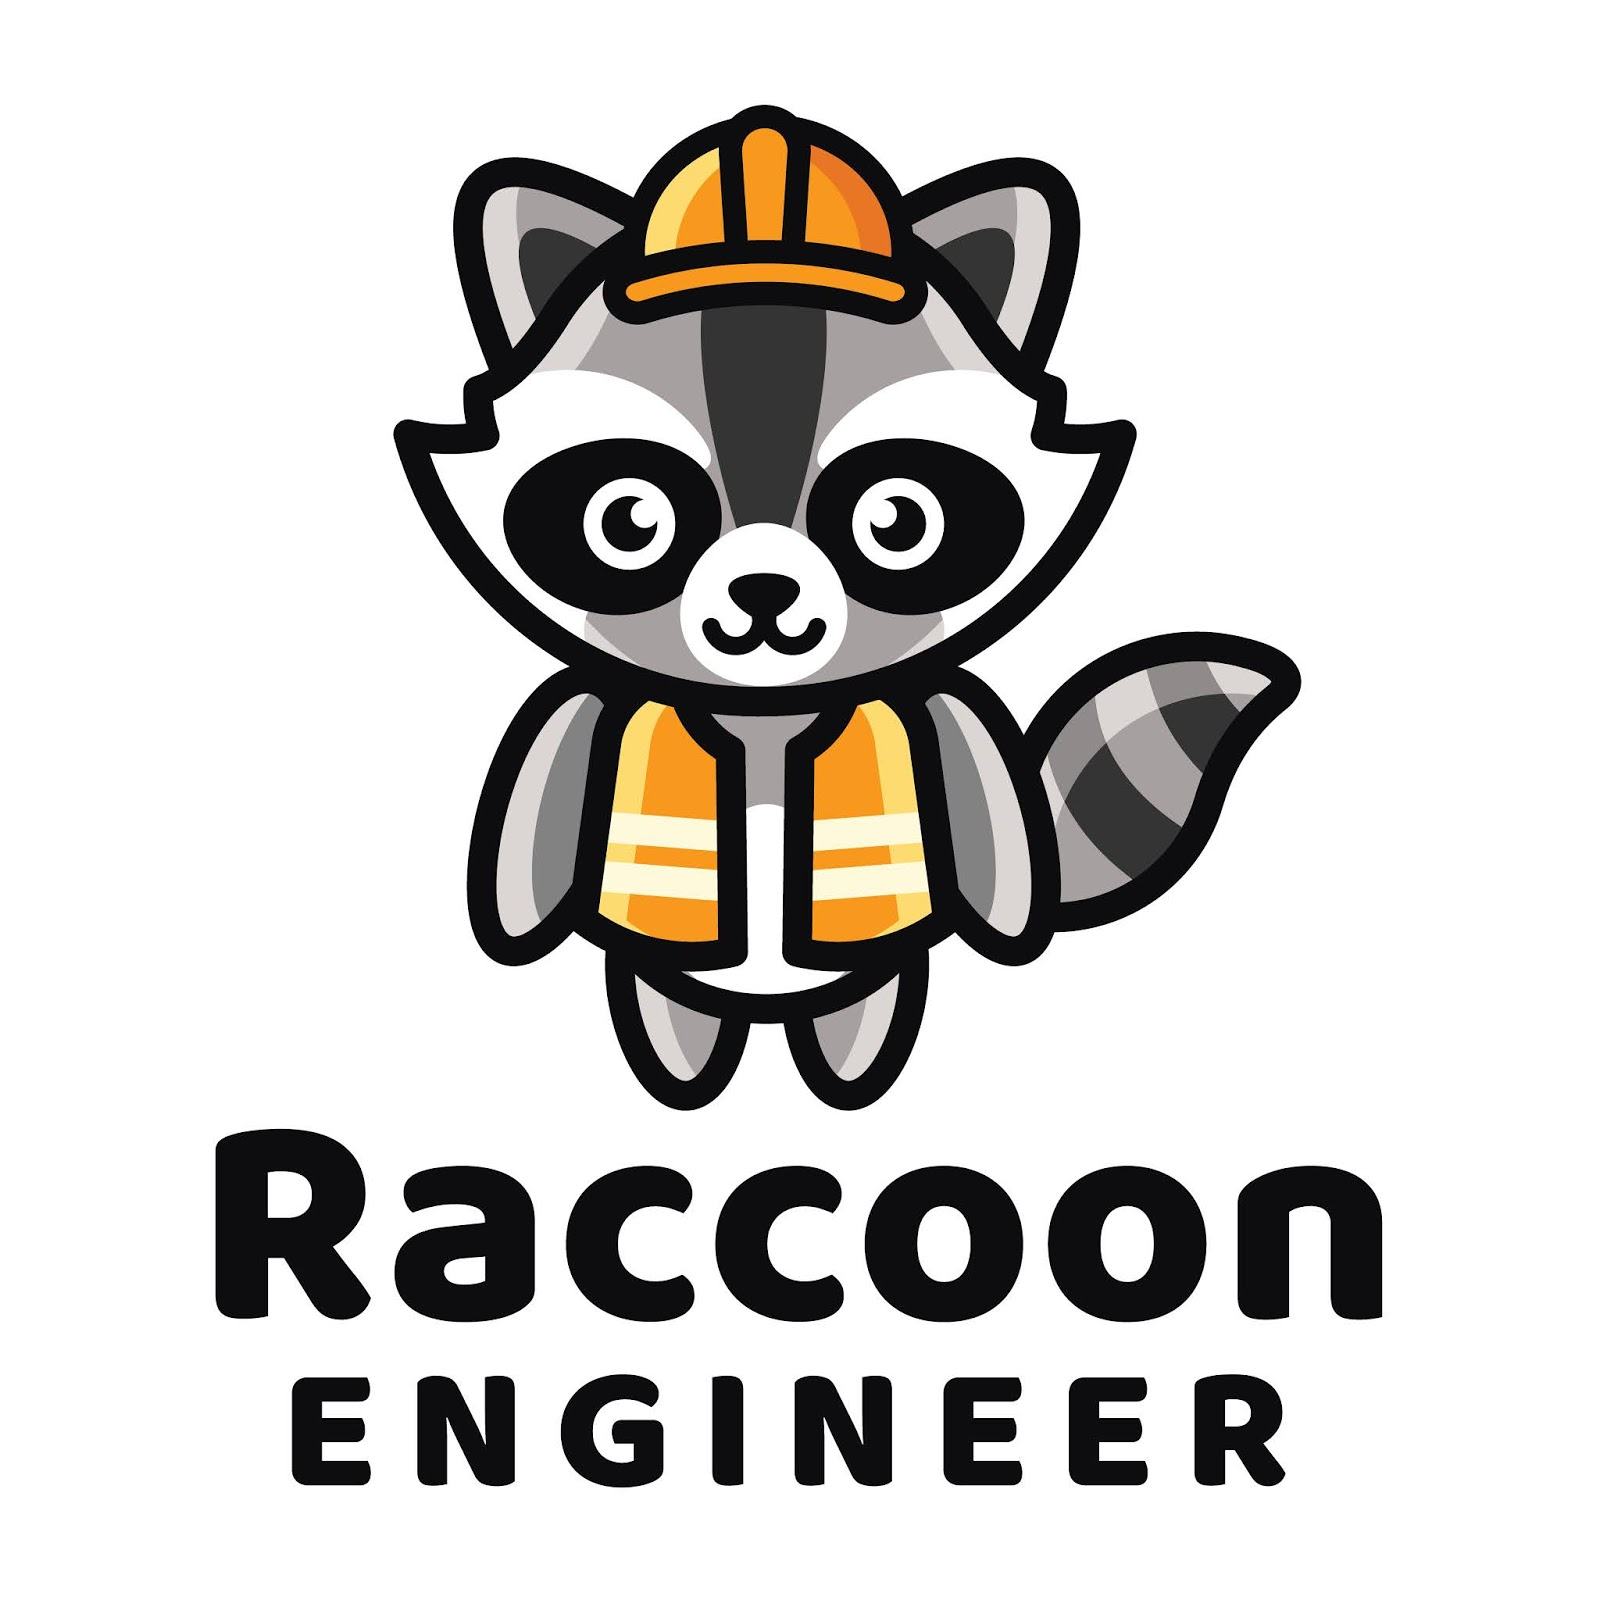 Raccoon Engineer Logo Template Free Download Vector CDR, AI, EPS and PNG Formats